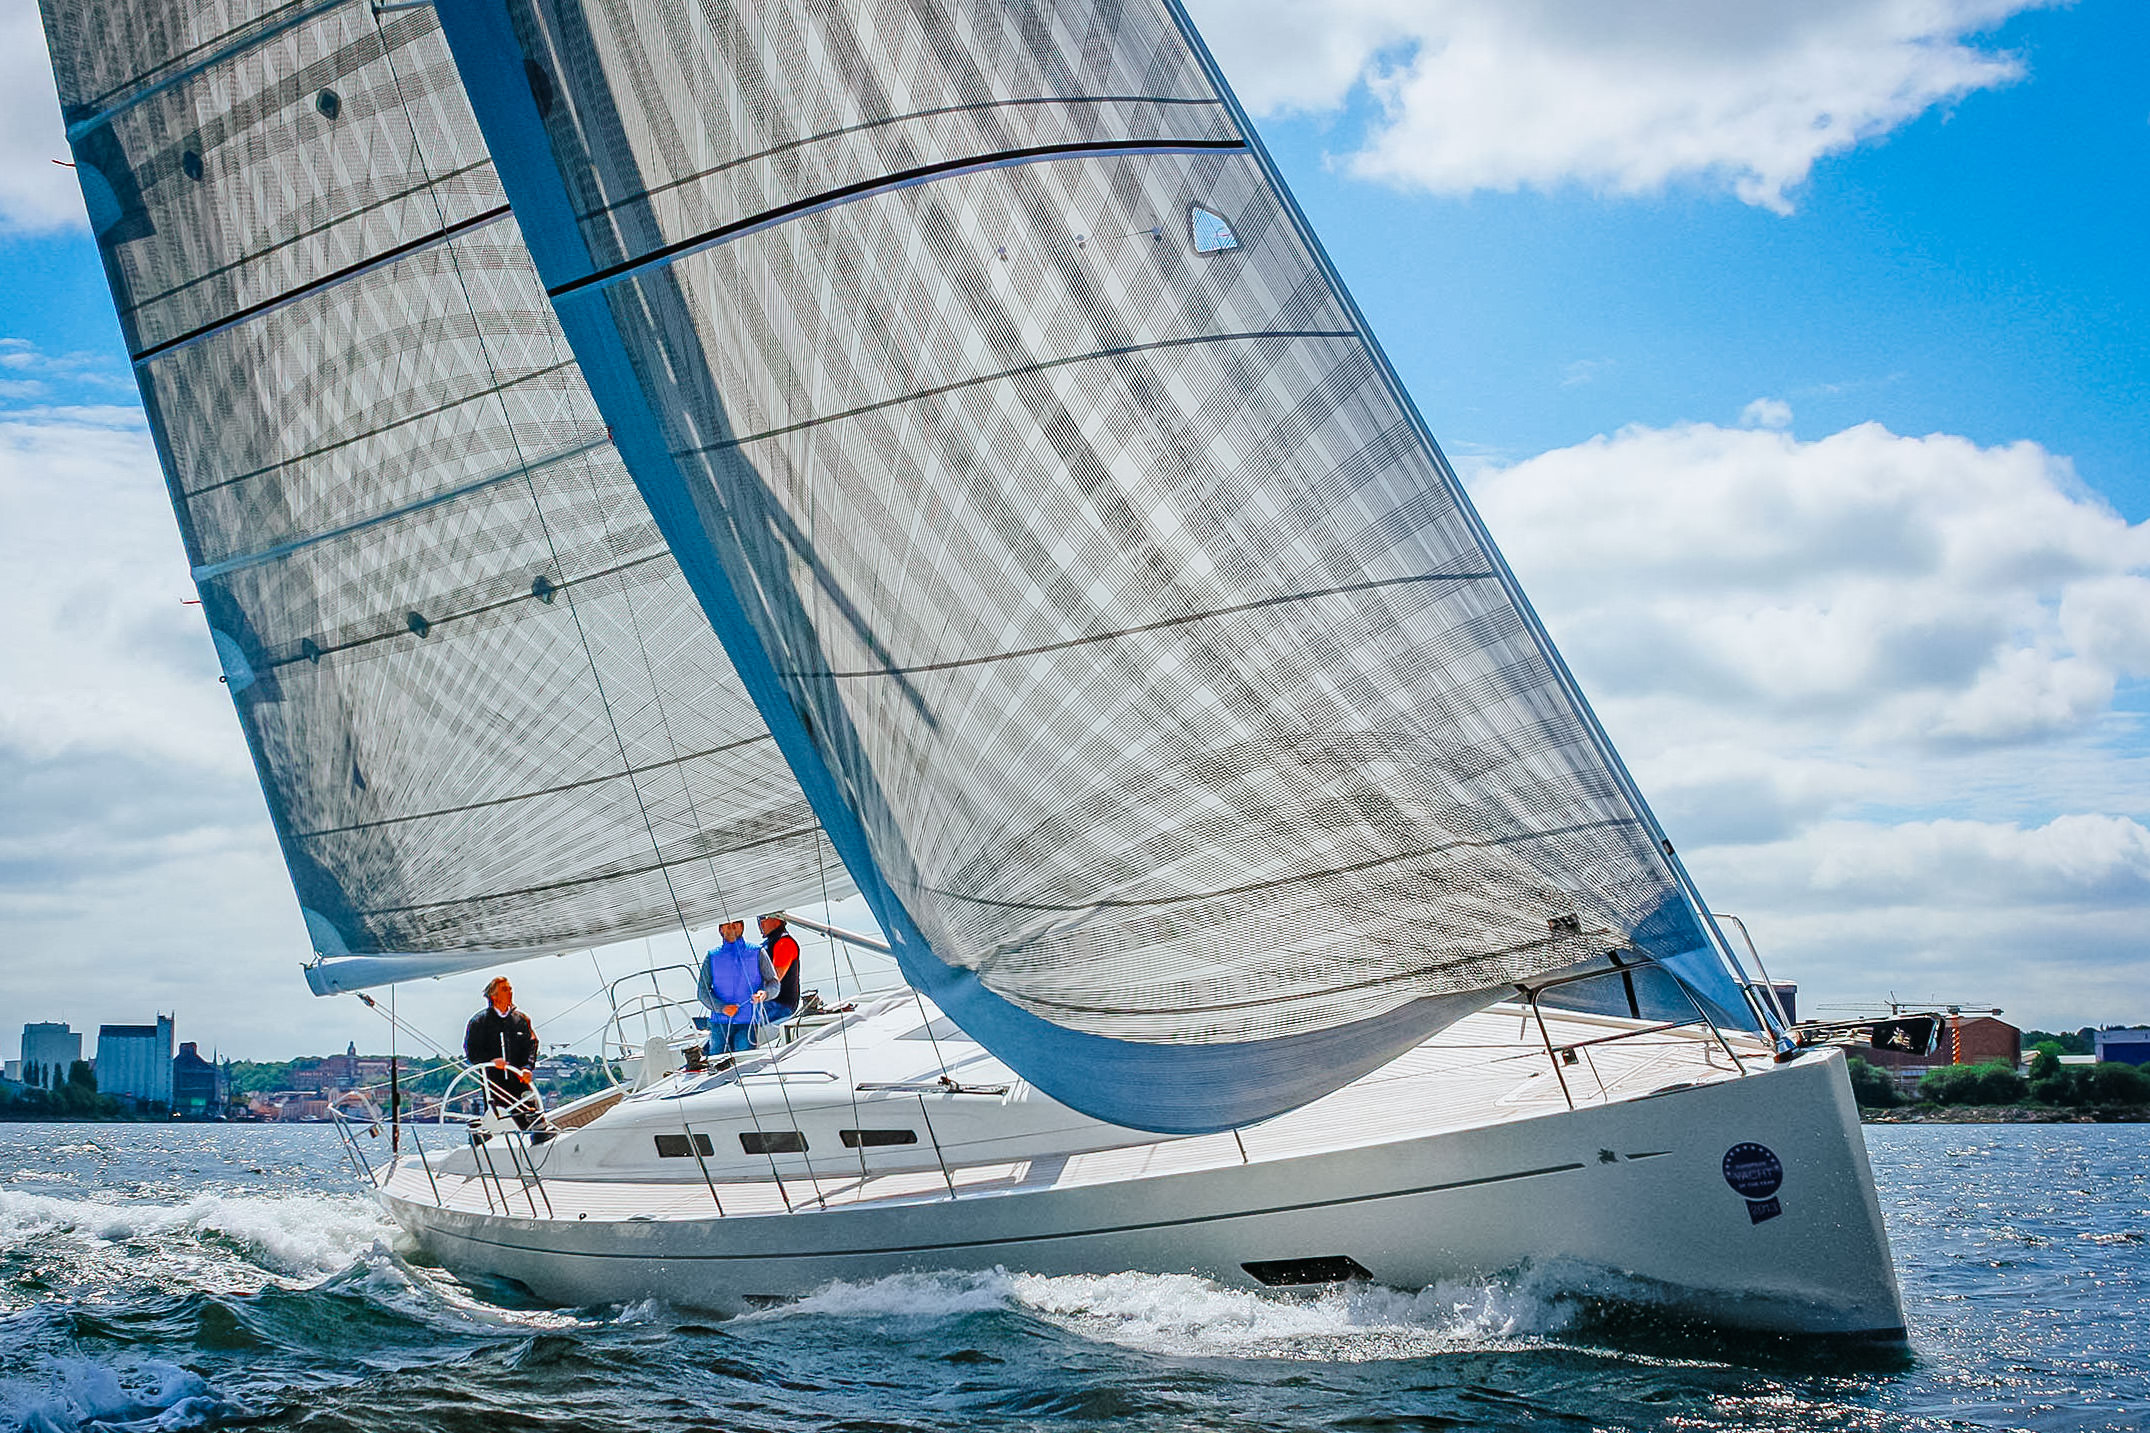 An Italia 13.98 with X-Drive carbon sails for both cruising and club racing.